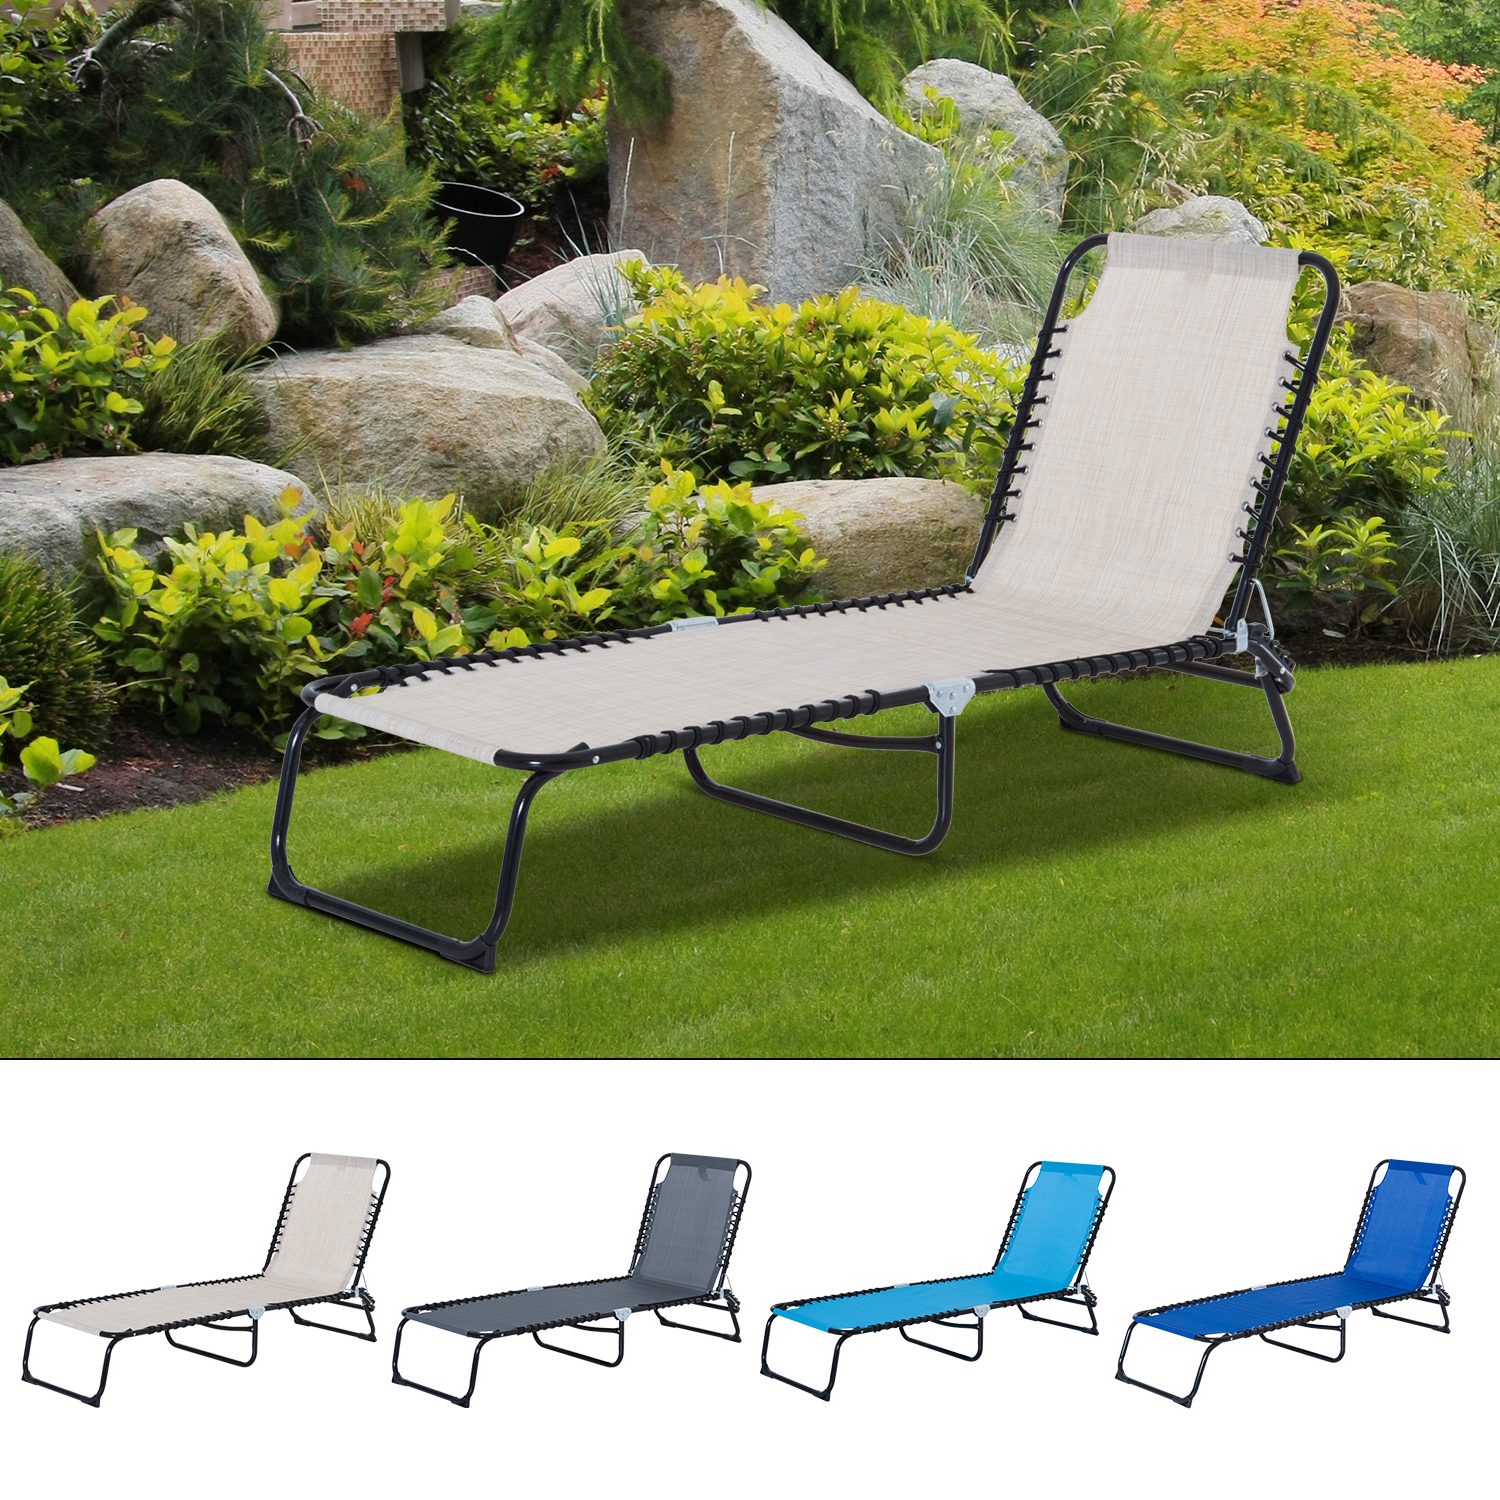 Details About 3 Position Portable Reclining Beach Chaise Lounge Adjustable Sleeping Bed Pertaining To Most Up To Date 3 Position Portable Reclining Beach Chaise Lounges (View 7 of 25)